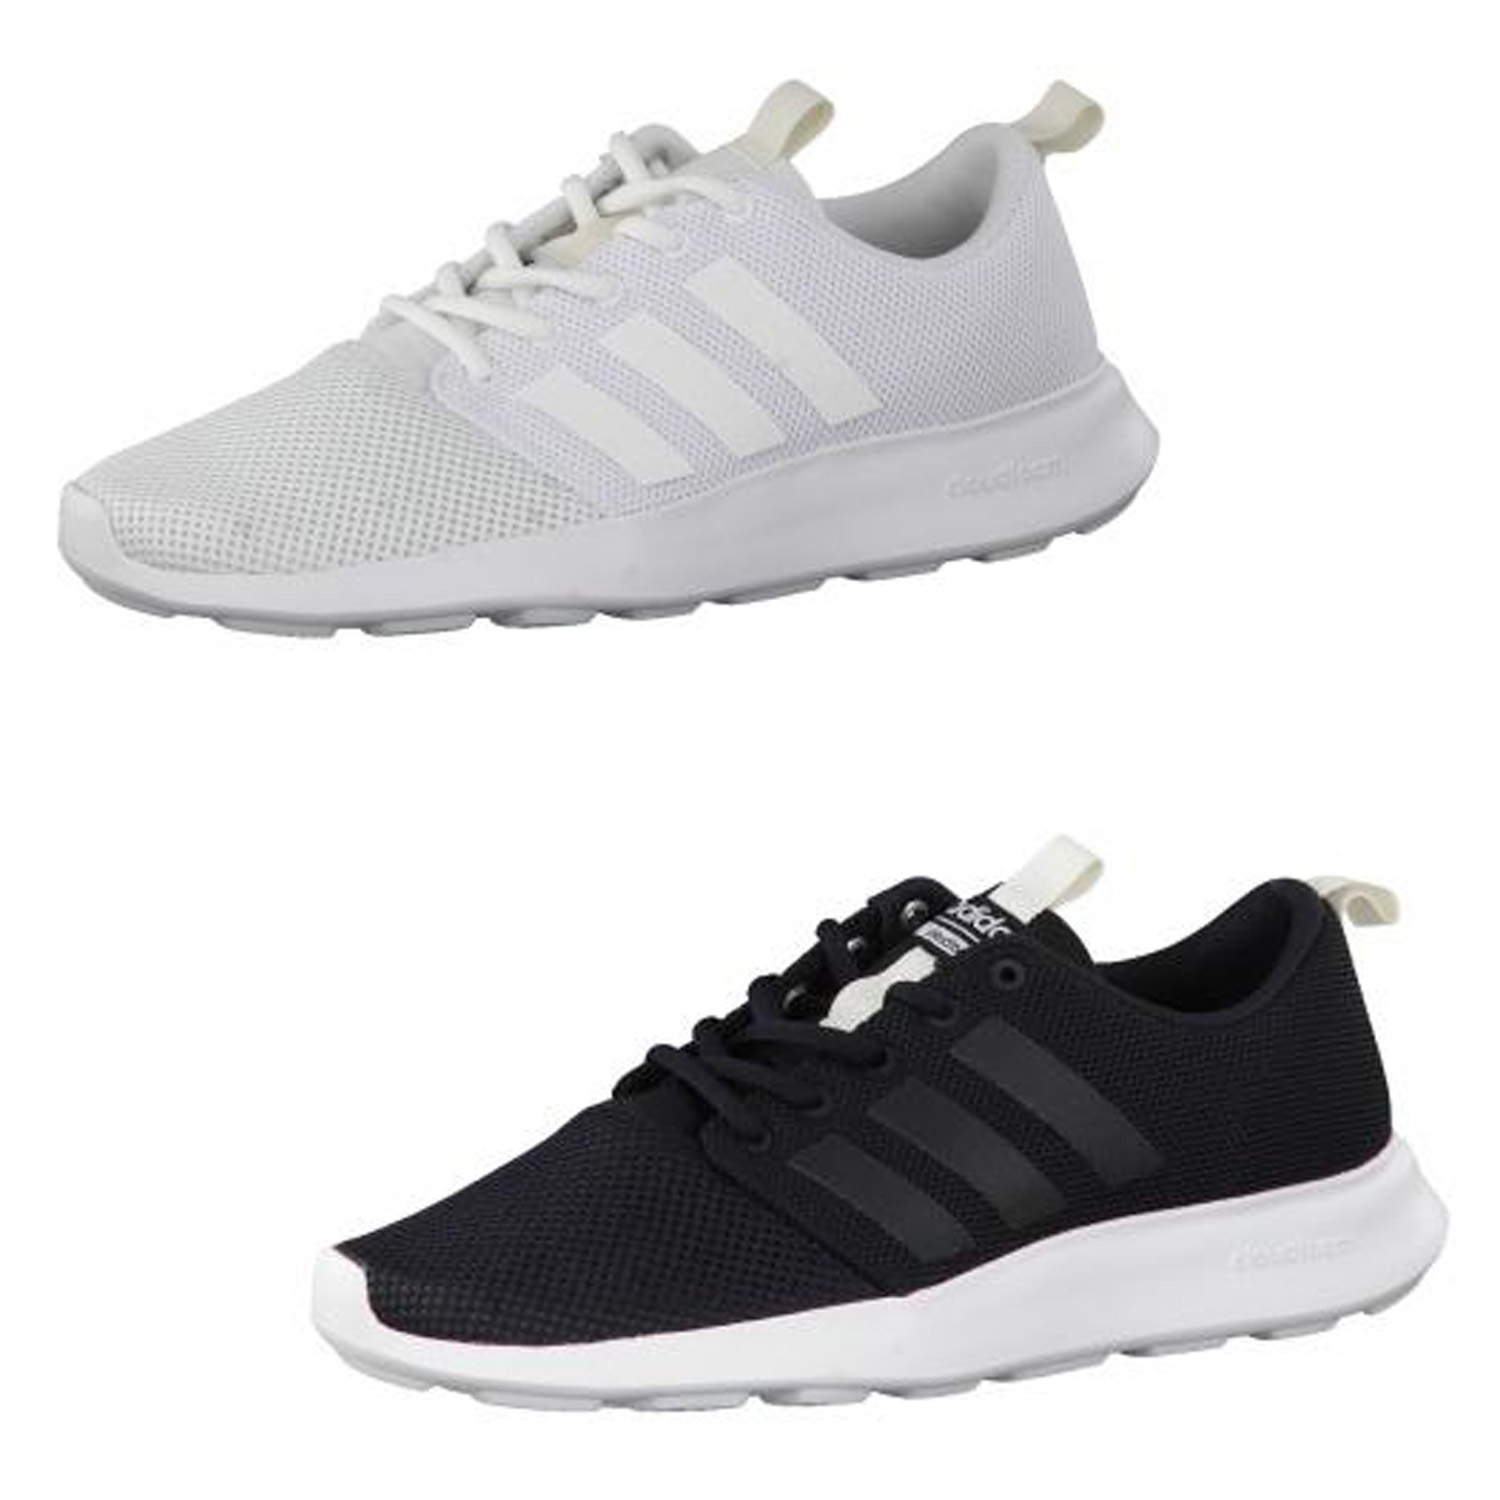 Adidas Neo Label Shoes In India